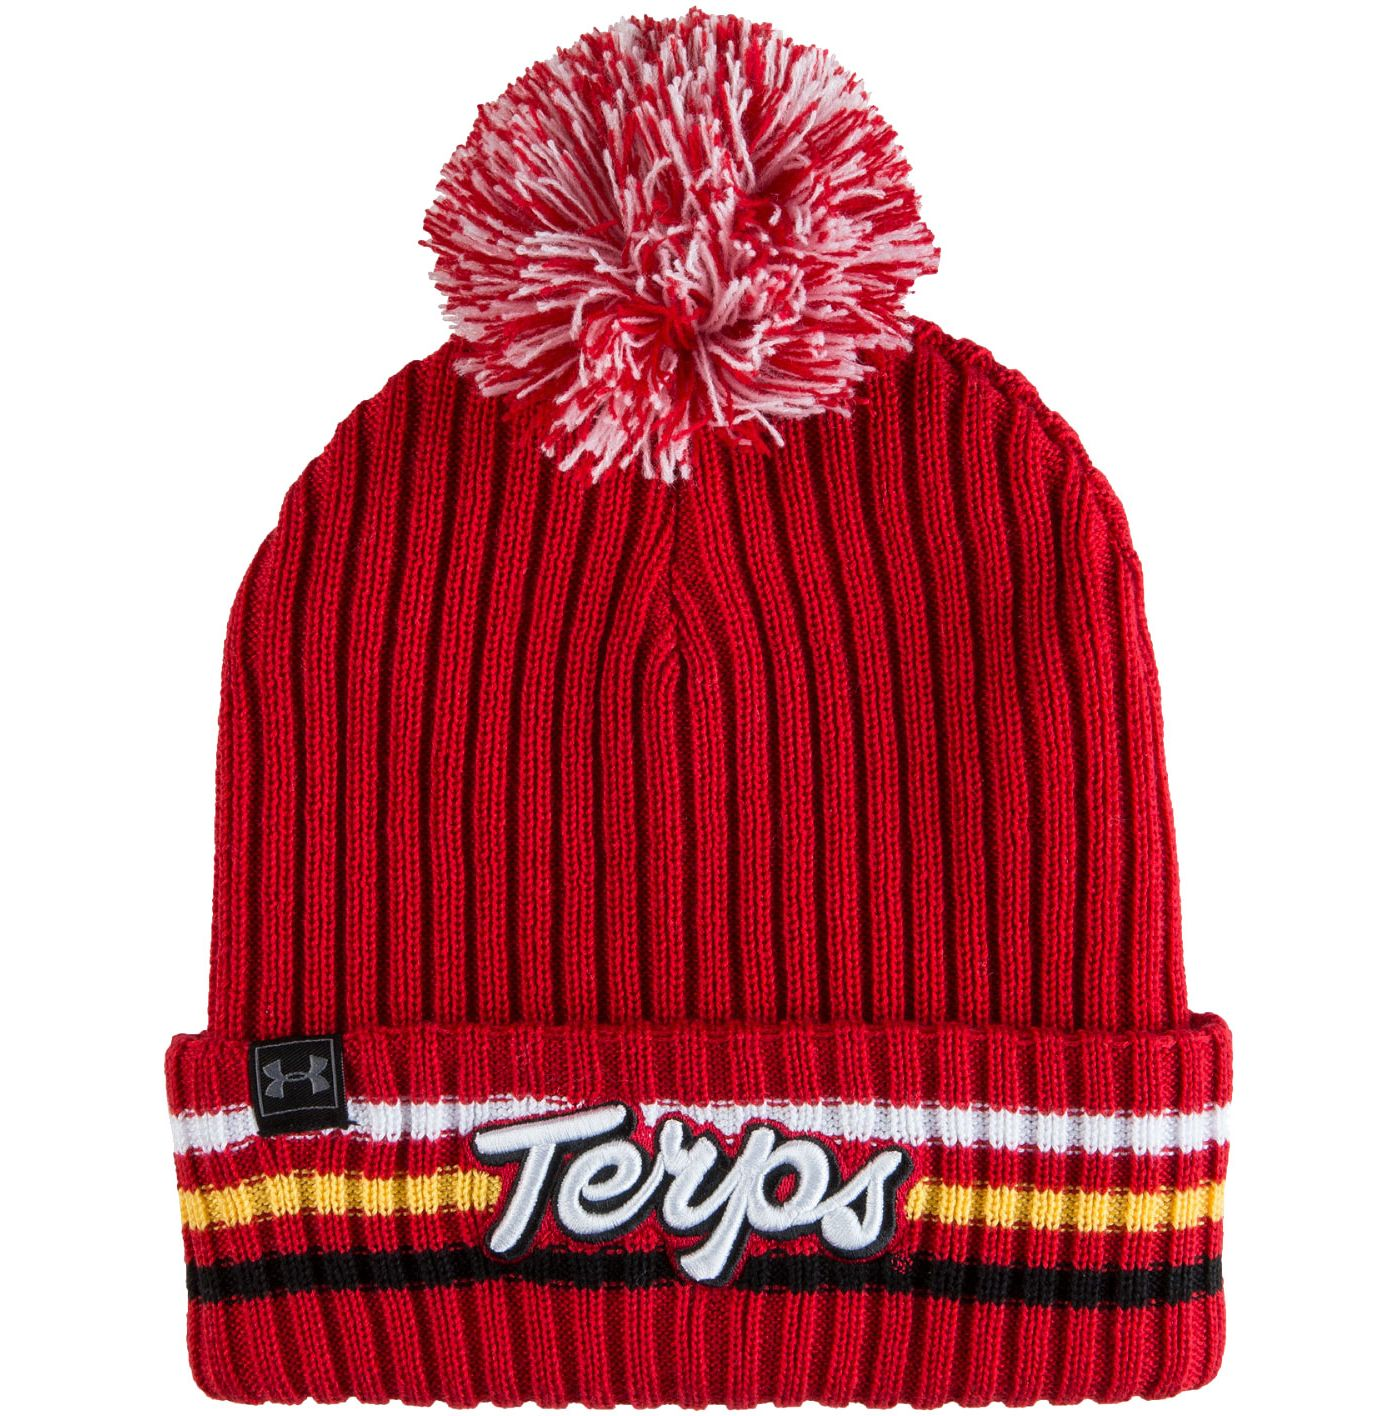 Under Armour Men's Maryland Terrapins Red Fundamental Pom Knit Beanie